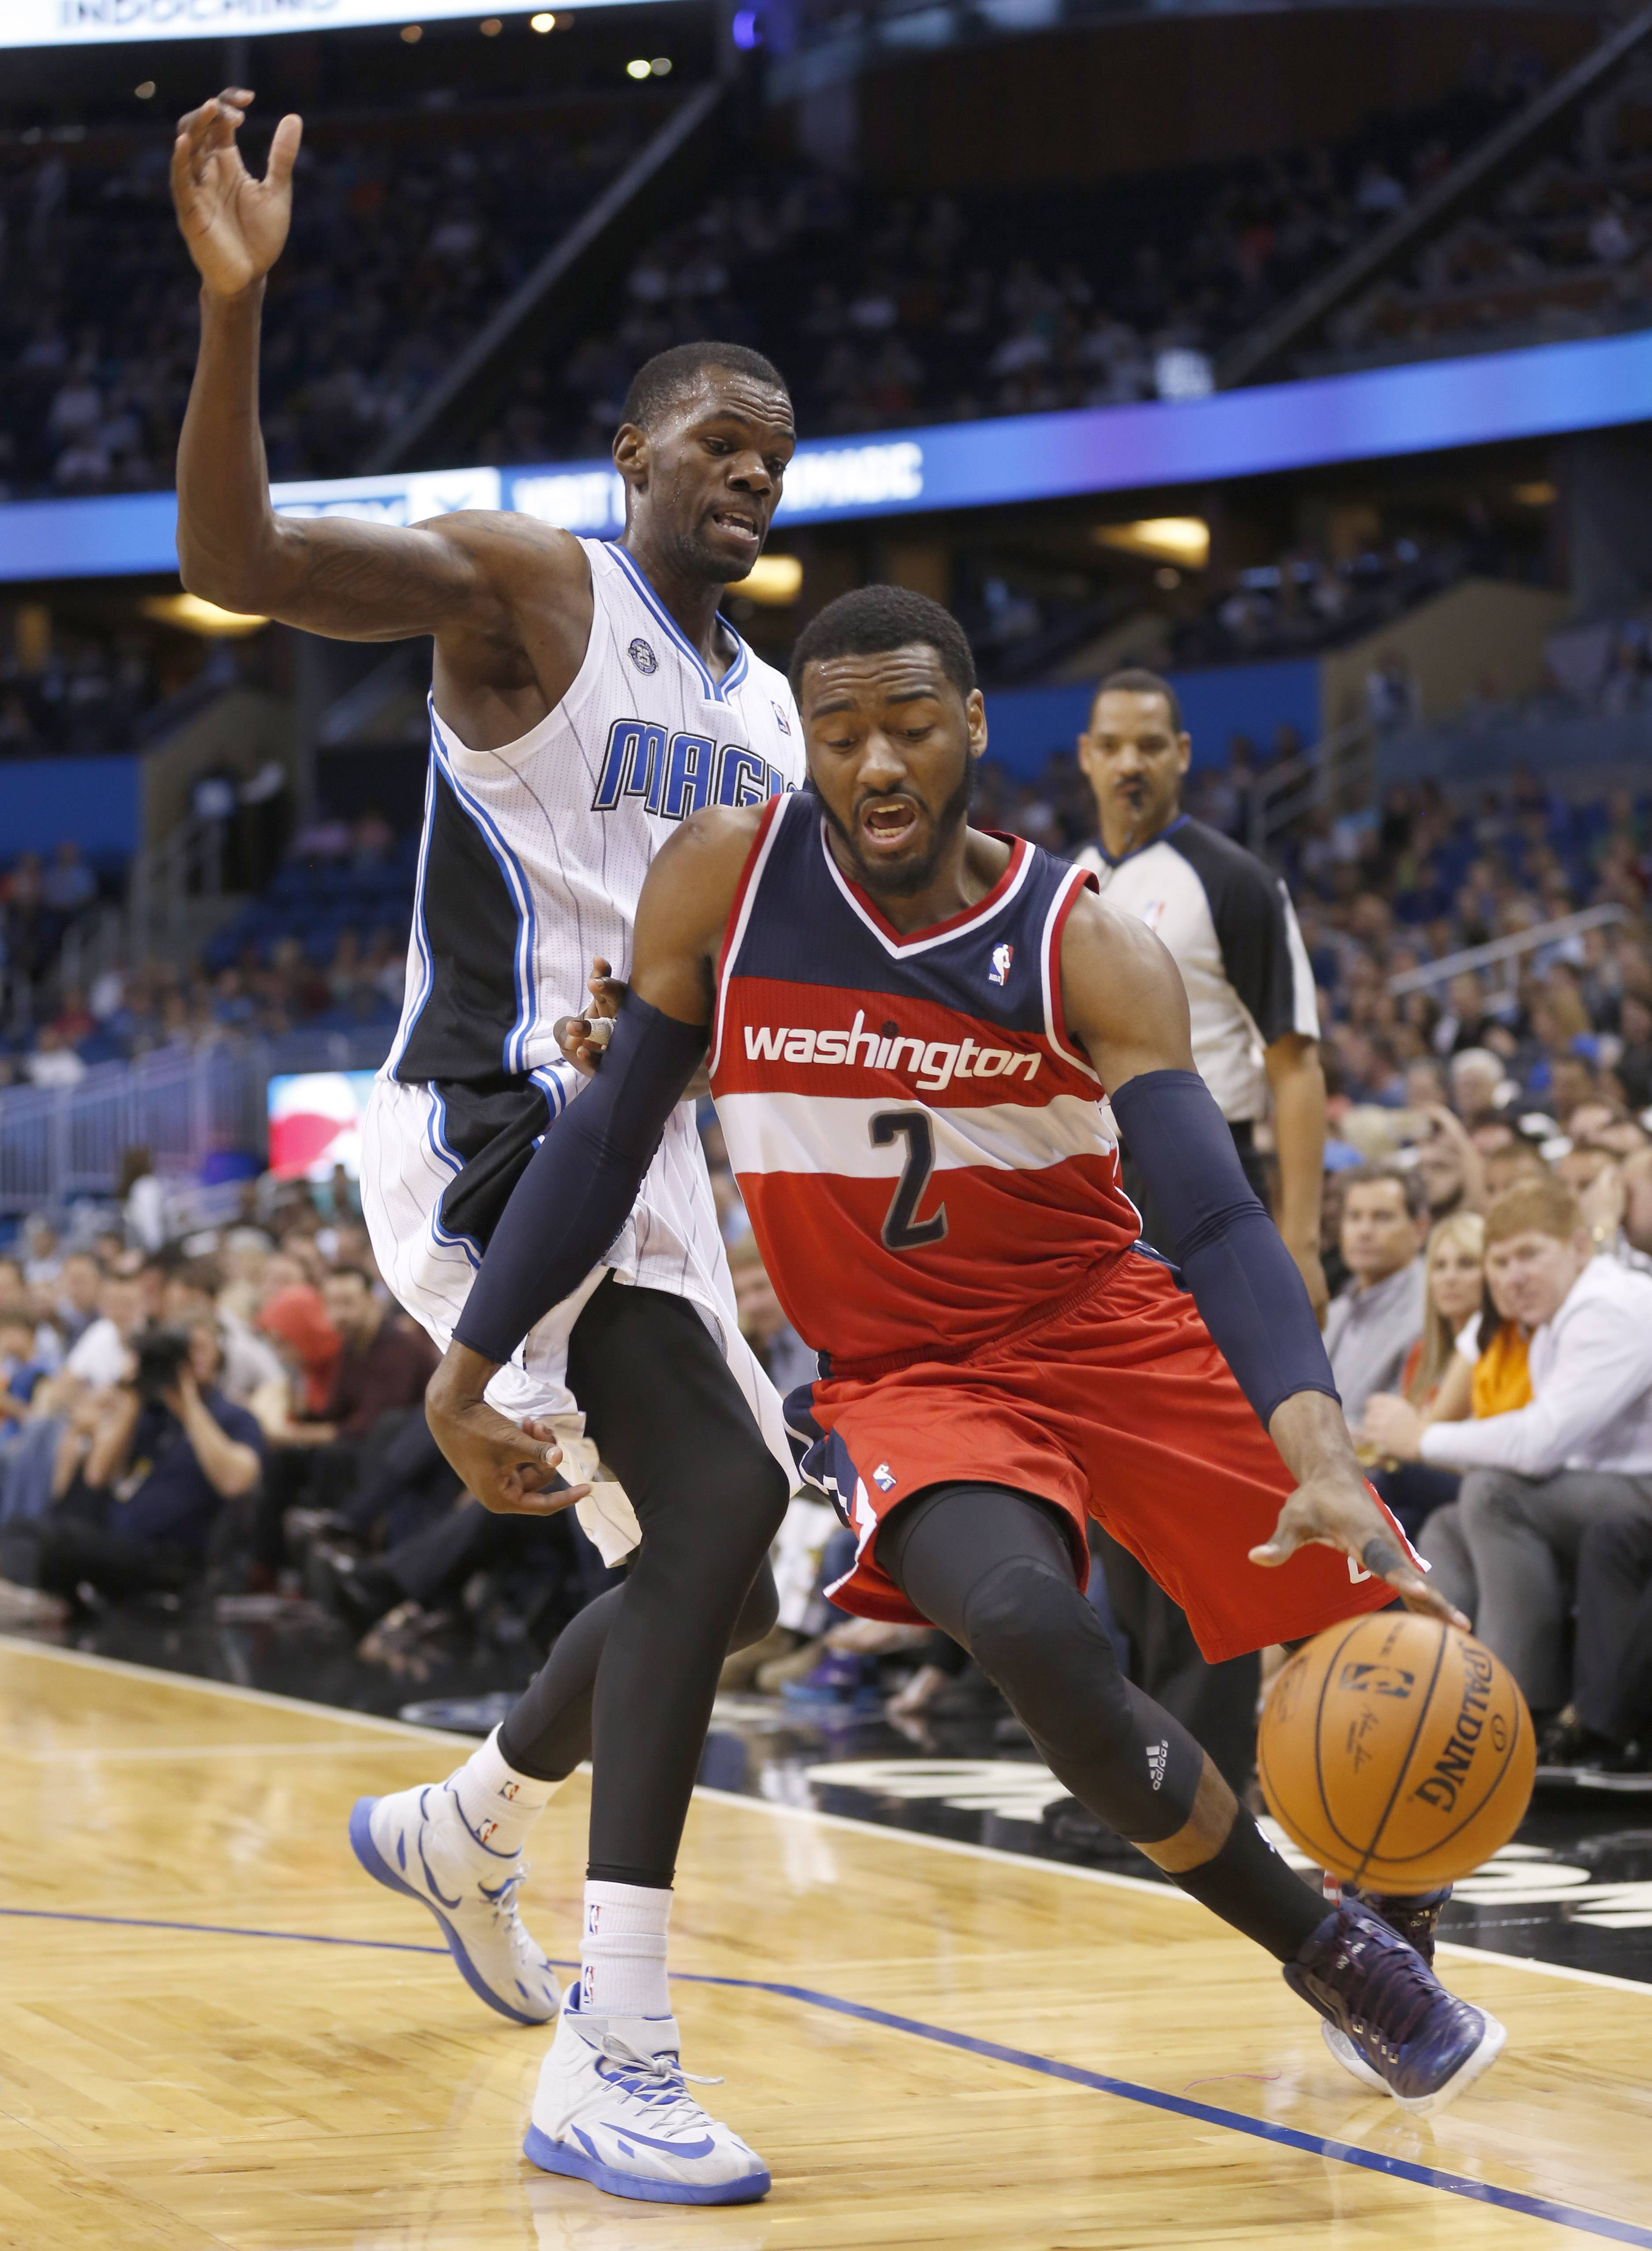 Wizards guard John Wall drives past Orlando Magic center Dewayne Dedmon during the first half of an NBA basketball game in Orlando, Fla., Friday, Apr. 11, 2014.